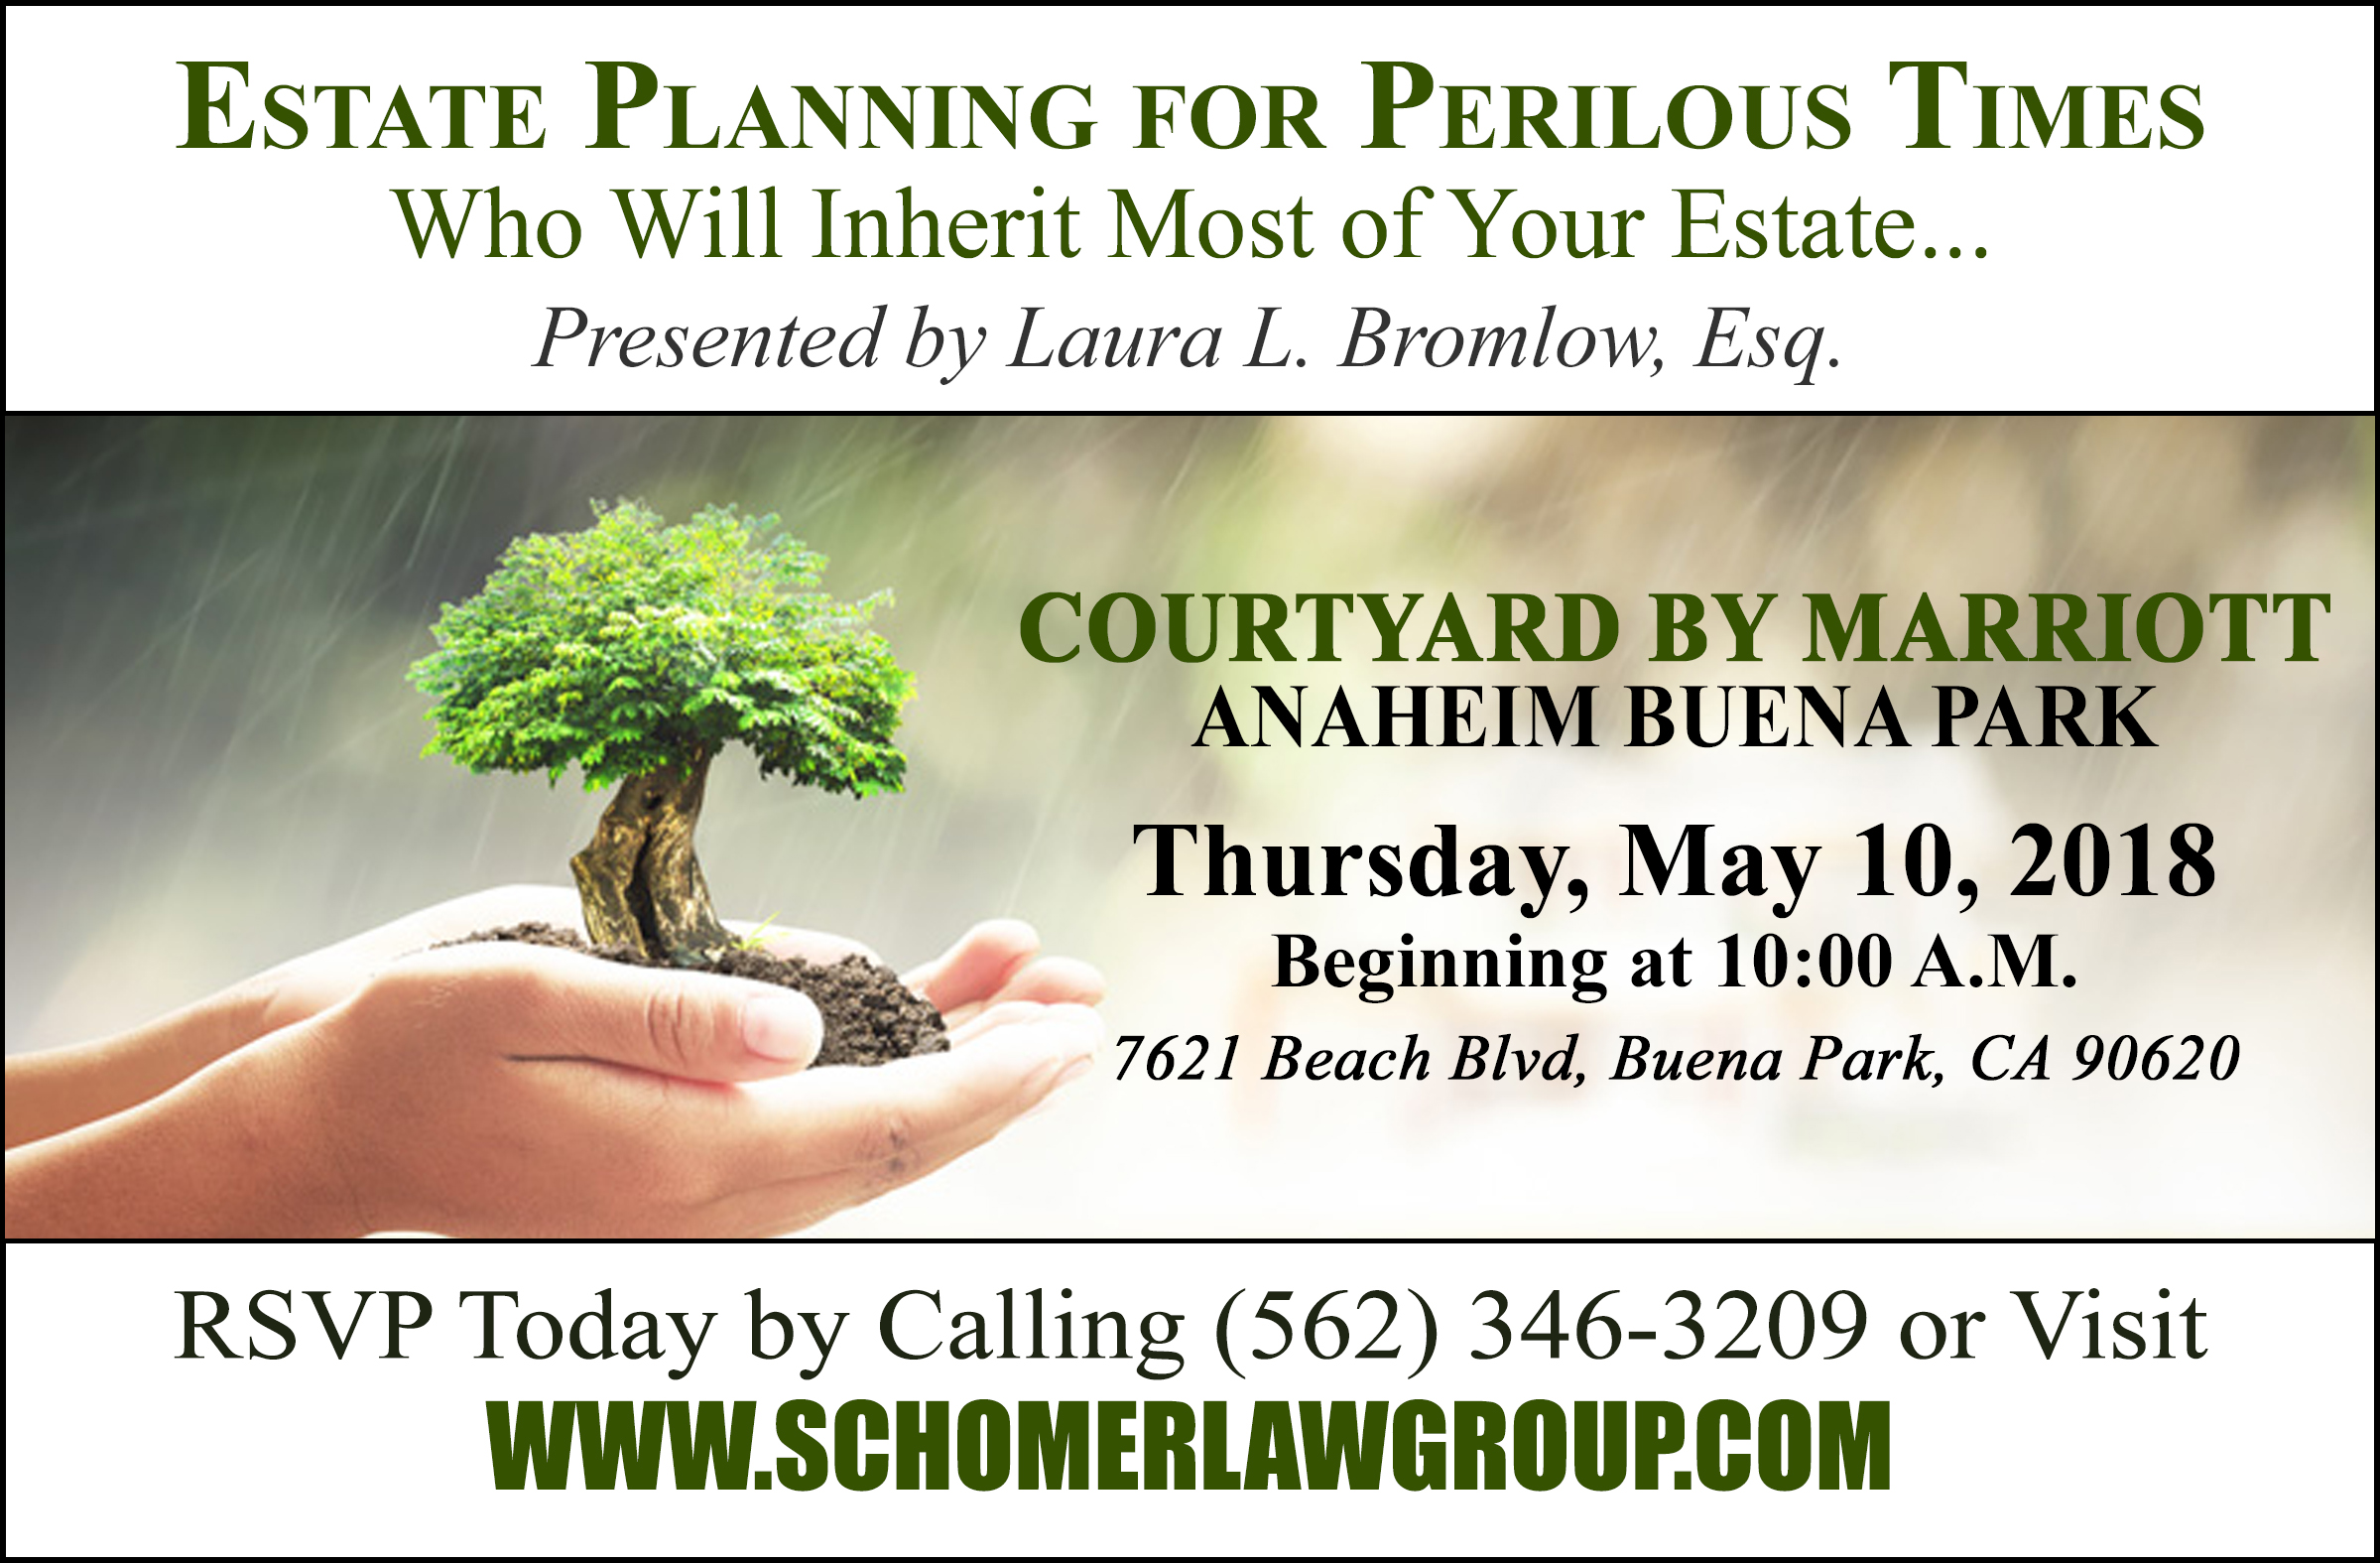 Estate Planning for Perilous Times: Who Will Inherit Most of Your Estate...